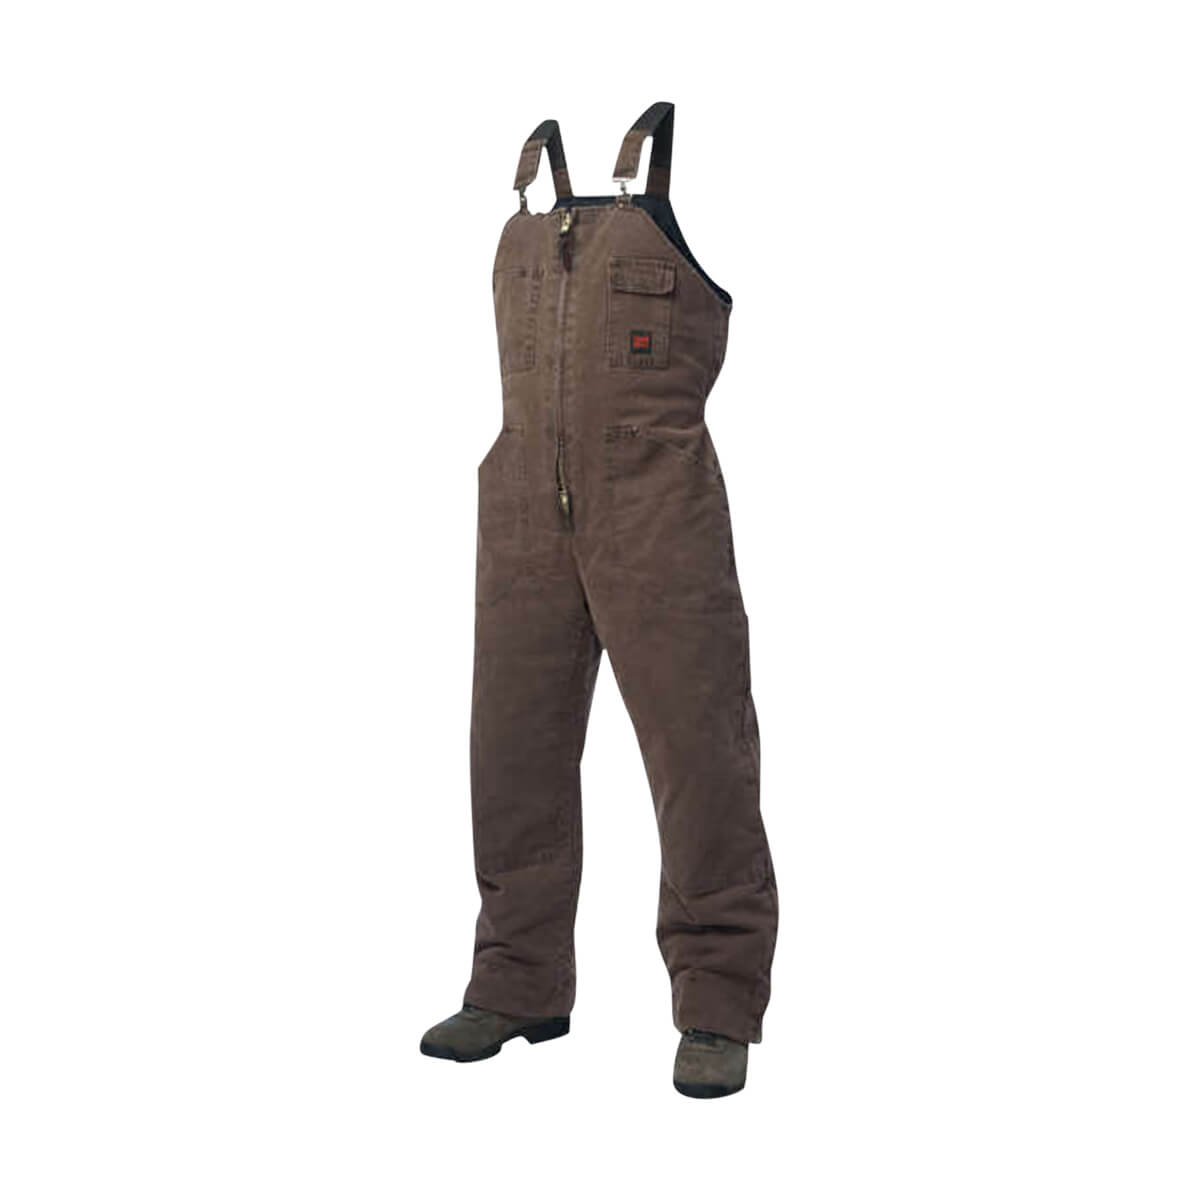 Tough Duck Washed Lined Bib Overall - Chestnut